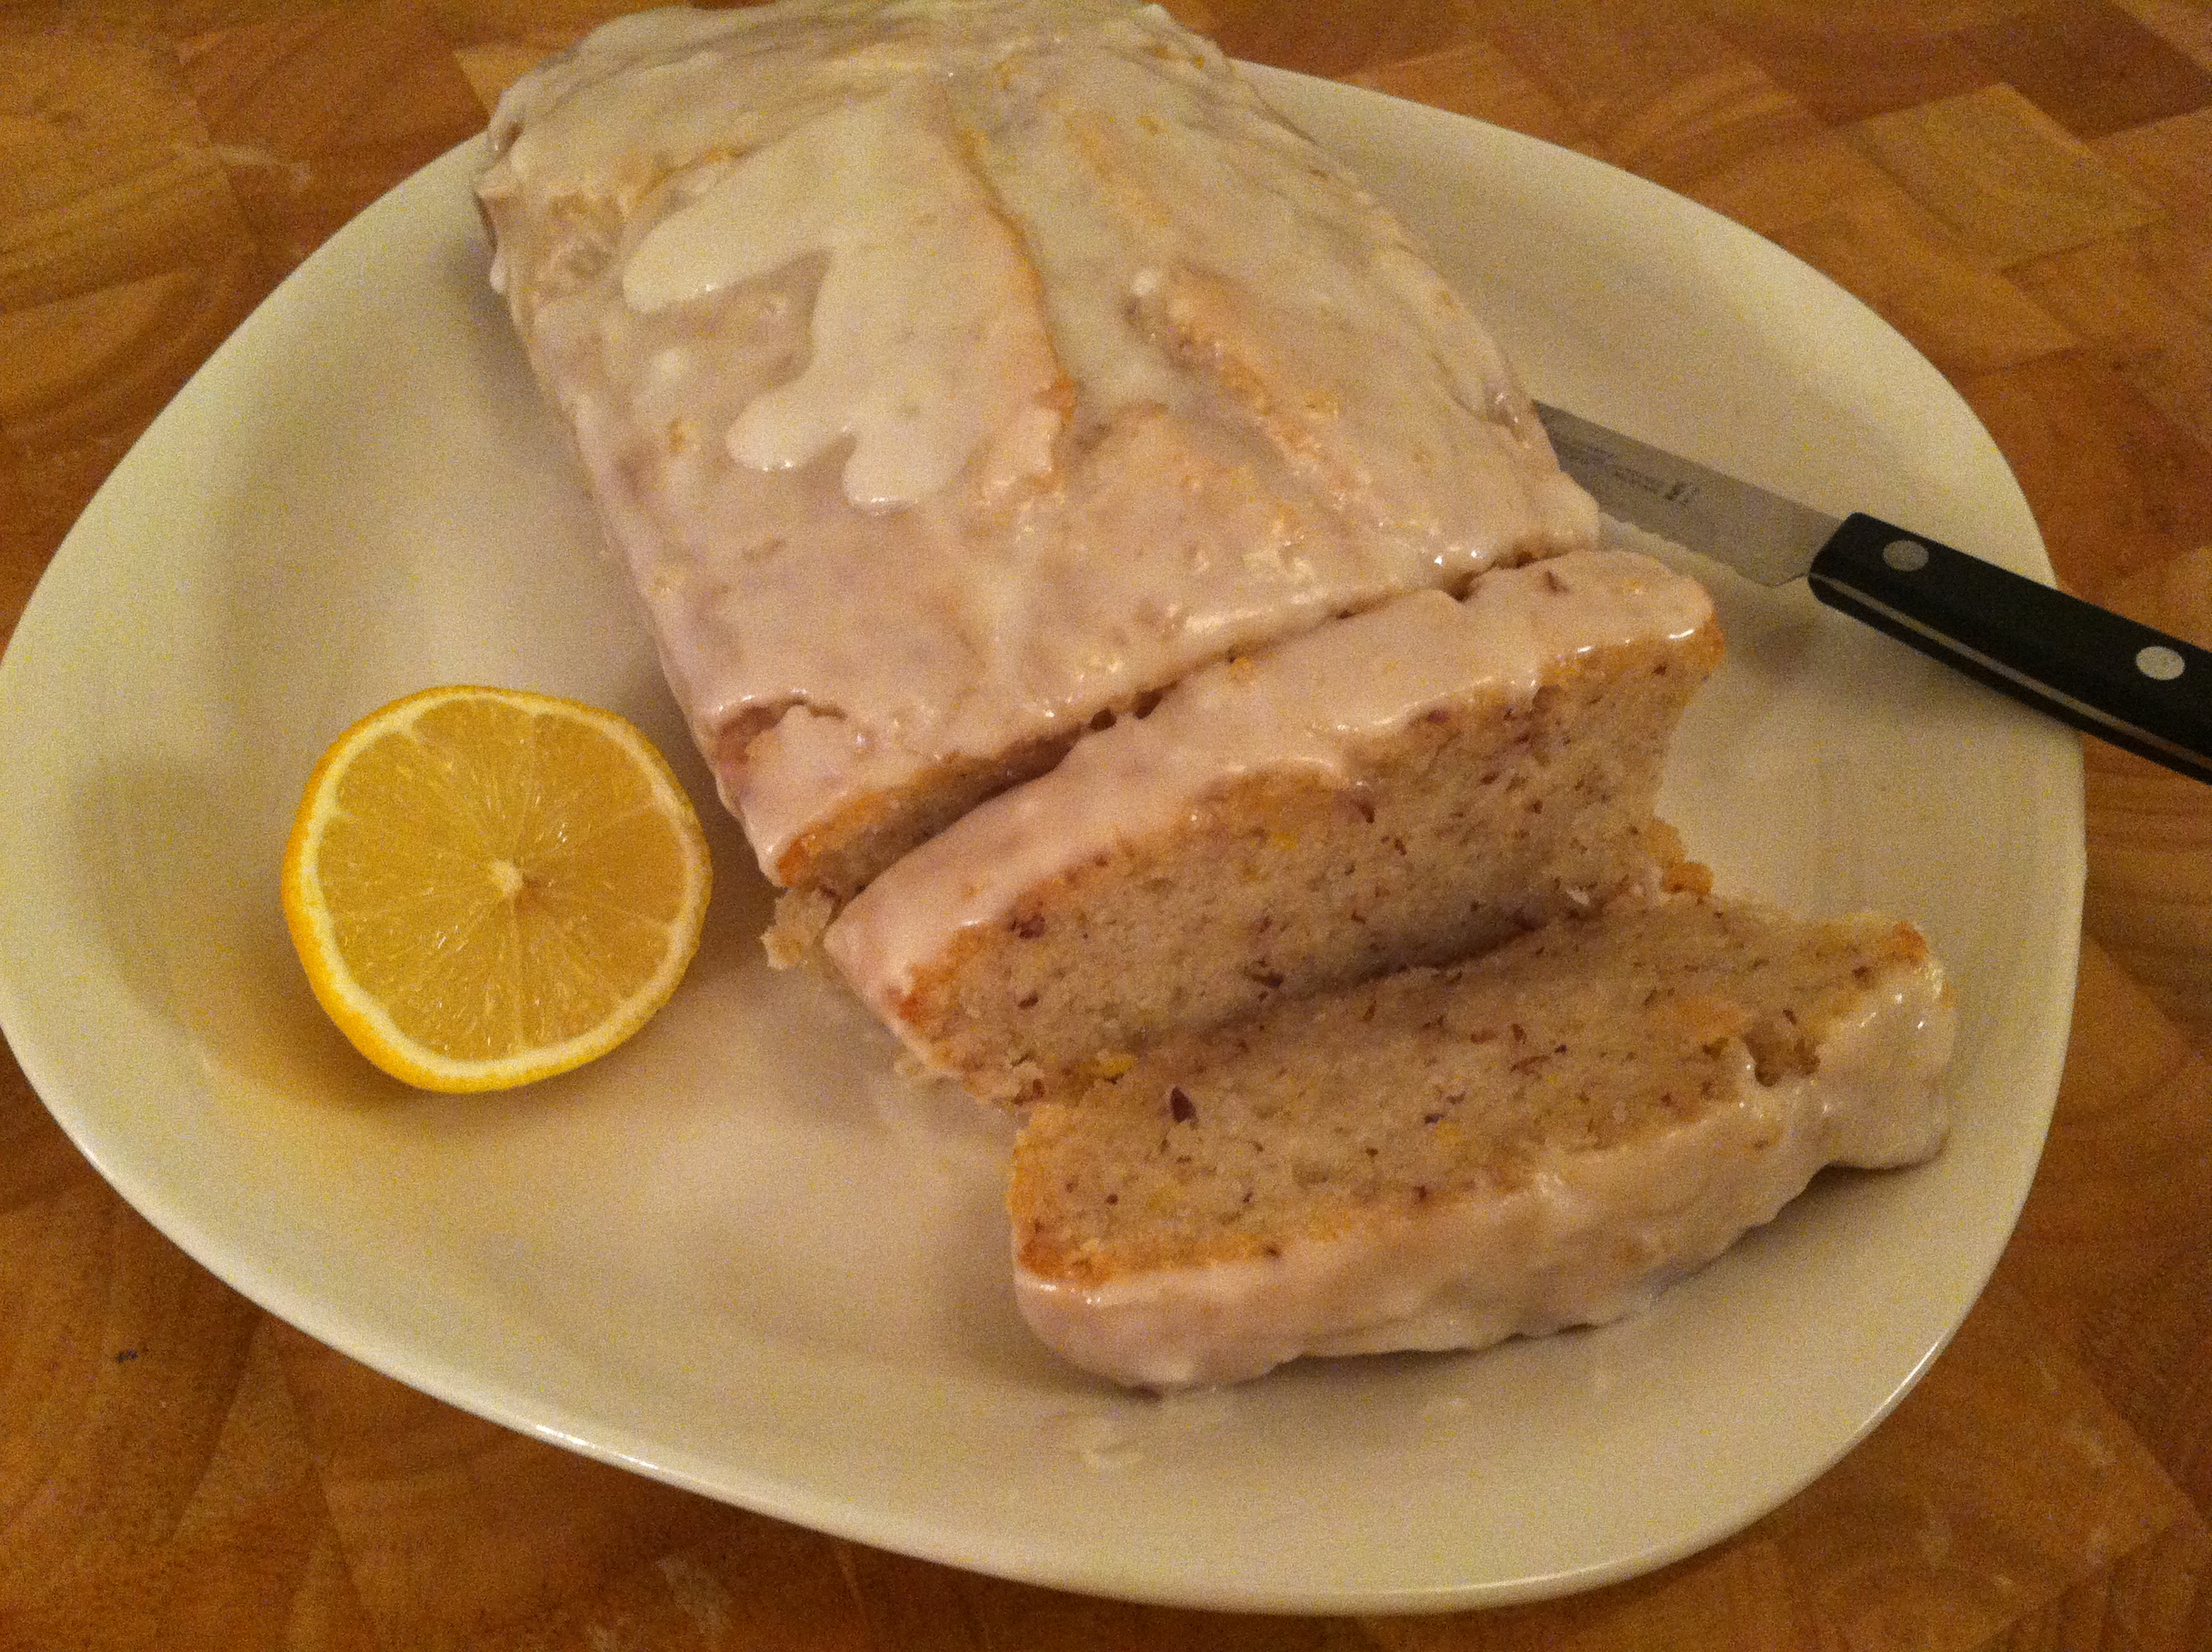 Barefoot Contessa Lemon Cake By Ina Garten Recipes — Dishmaps